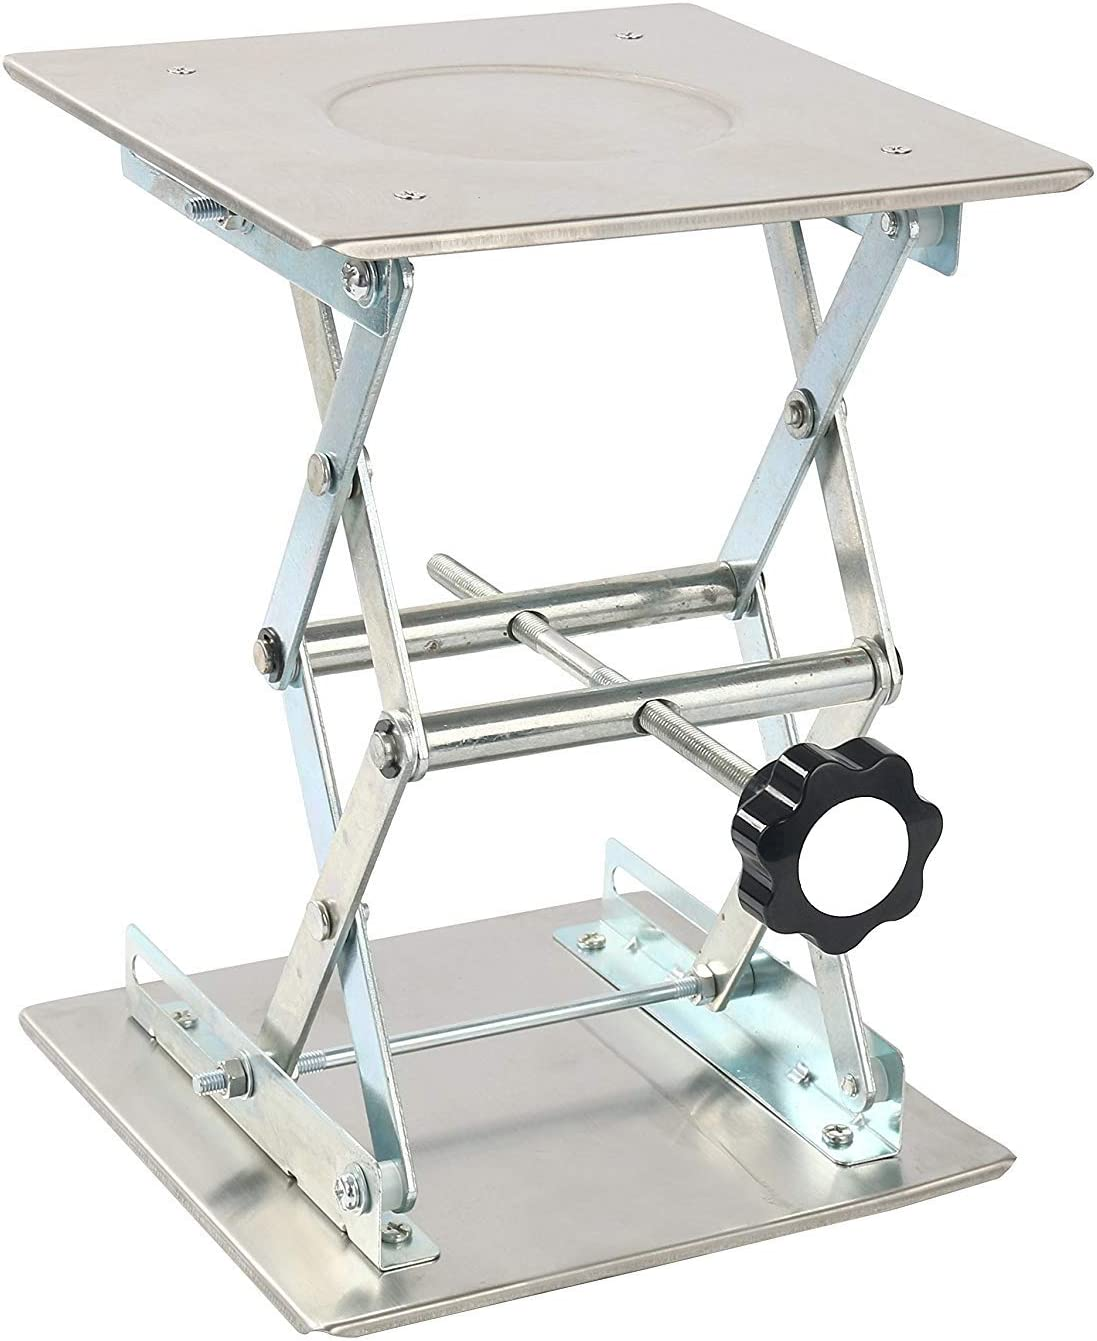 FamYun 4 x 4 100mm Stainless Steel Lab Jack Scissor Stand Platform LAB Lift Laboratory Jiffy Jack Rack Lifter